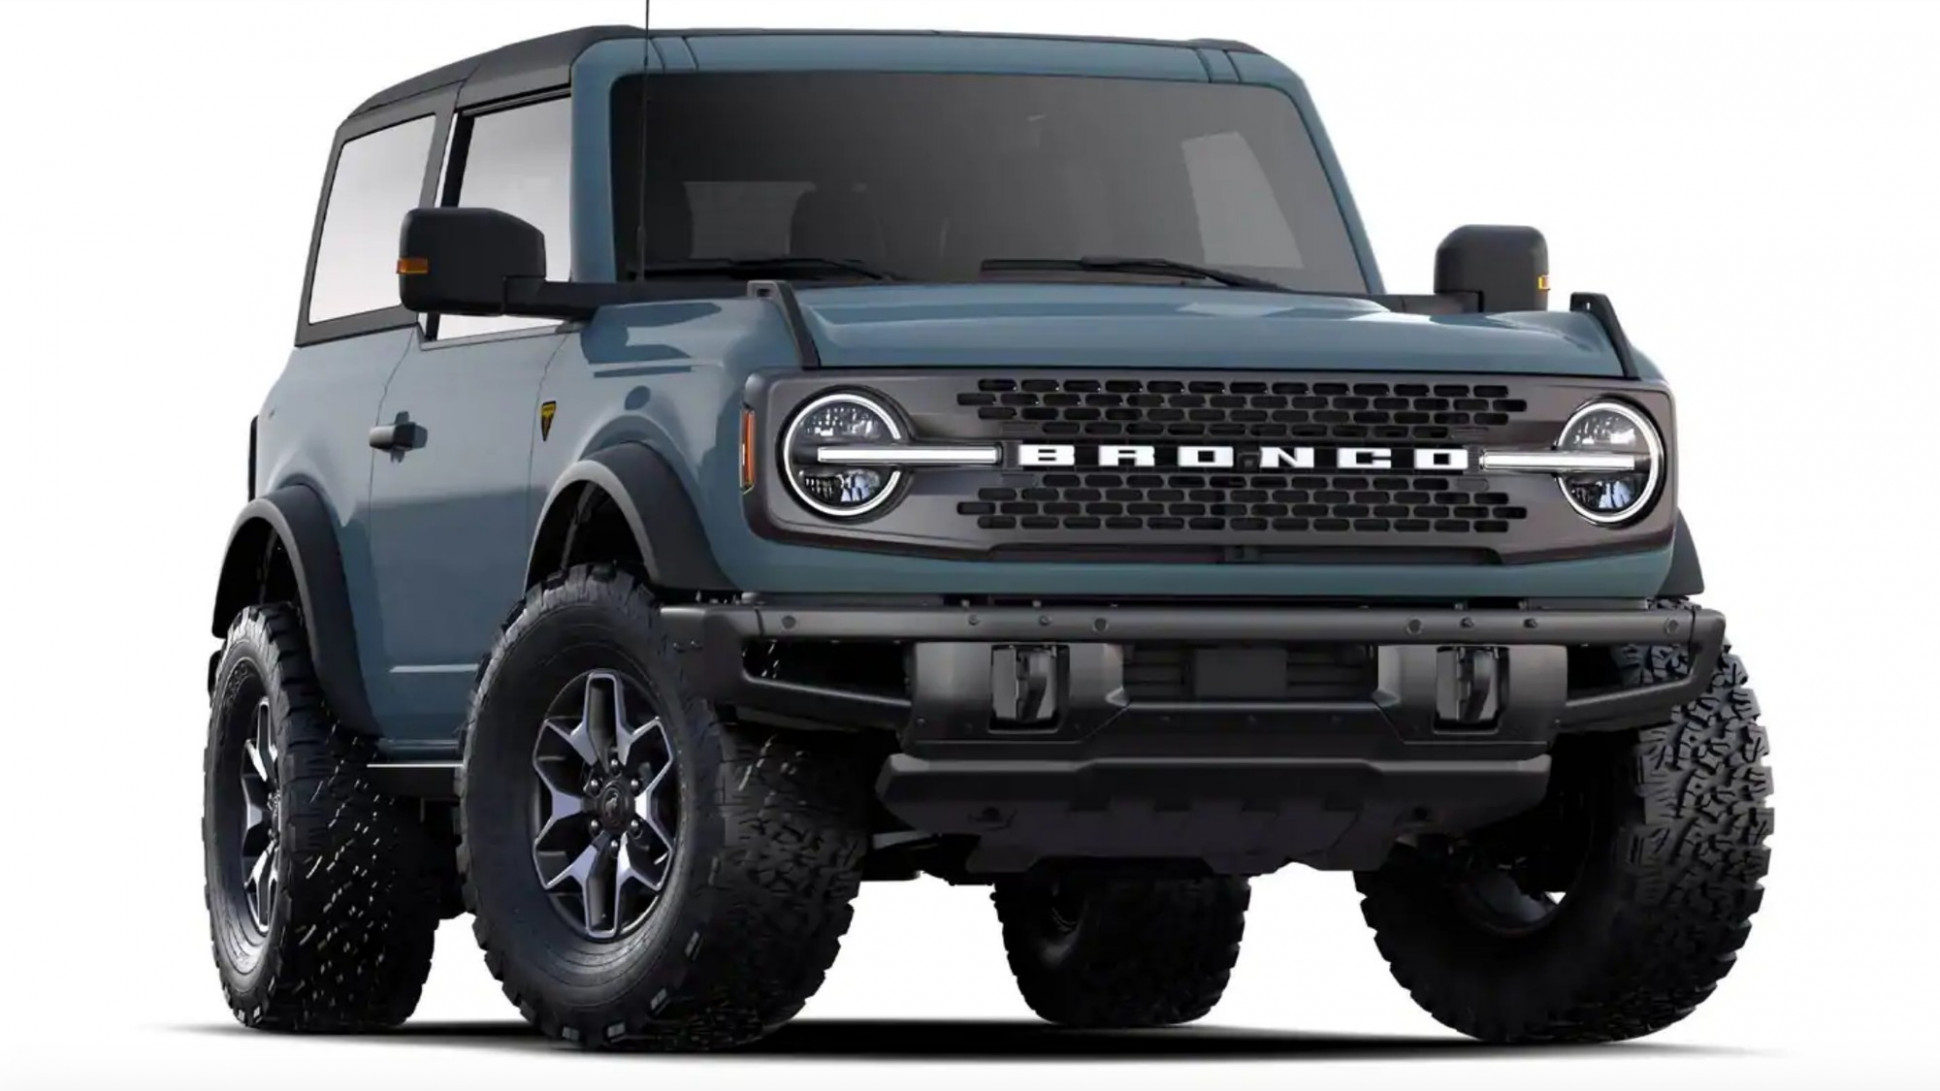 Engine Build Your Own 2022 Ford Bronco